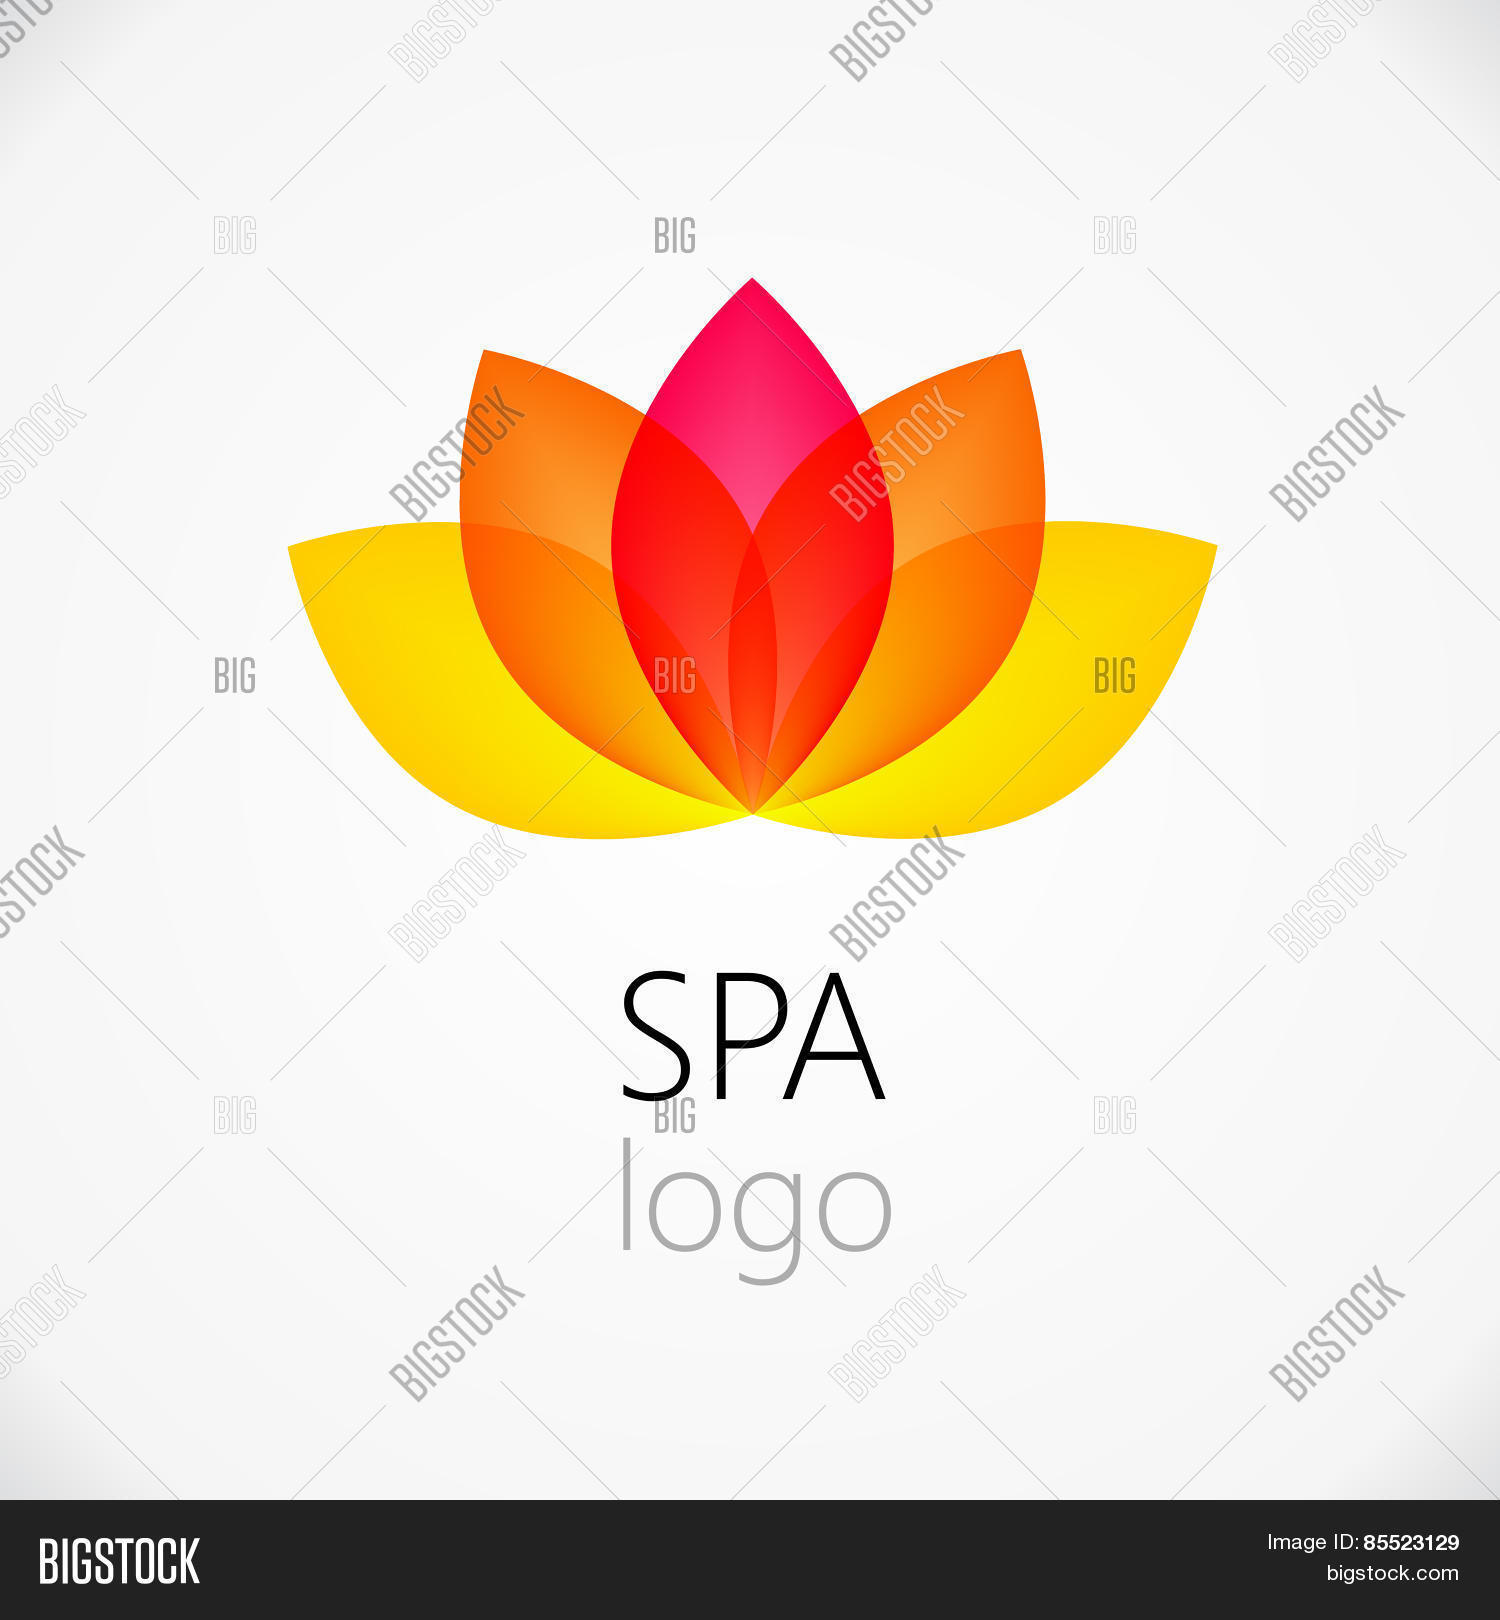 Lotus flower abstract vector photo free trial bigstock lotus flower abstract vector logo design template mightylinksfo